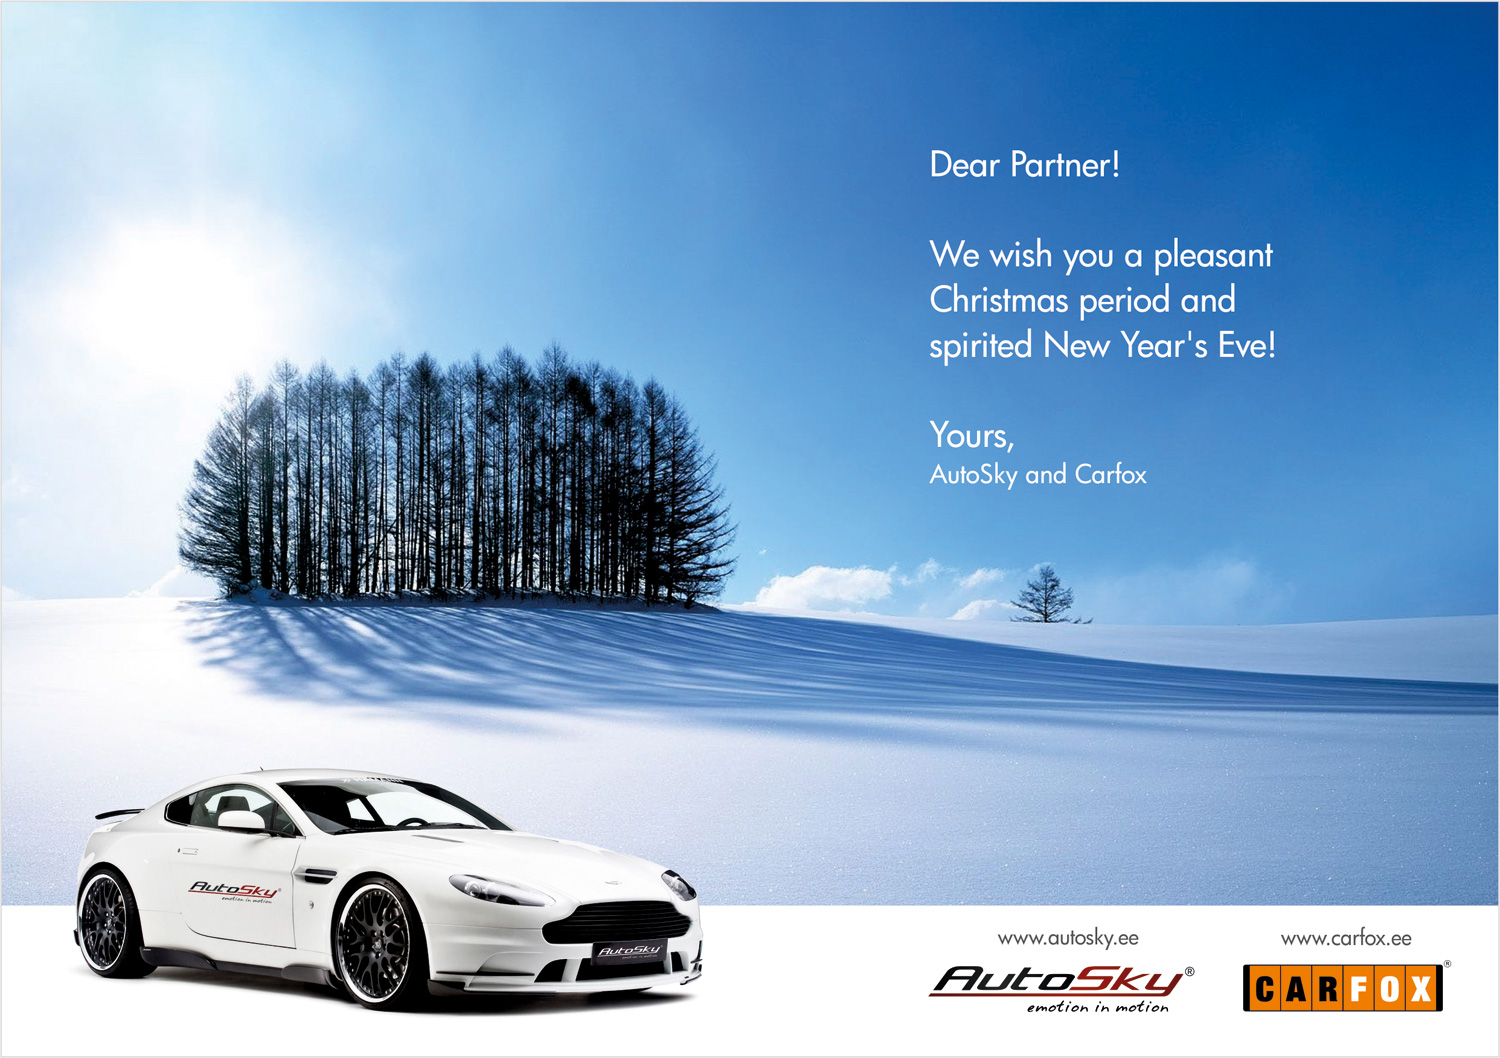 We wish you a pleasant Christmas time!